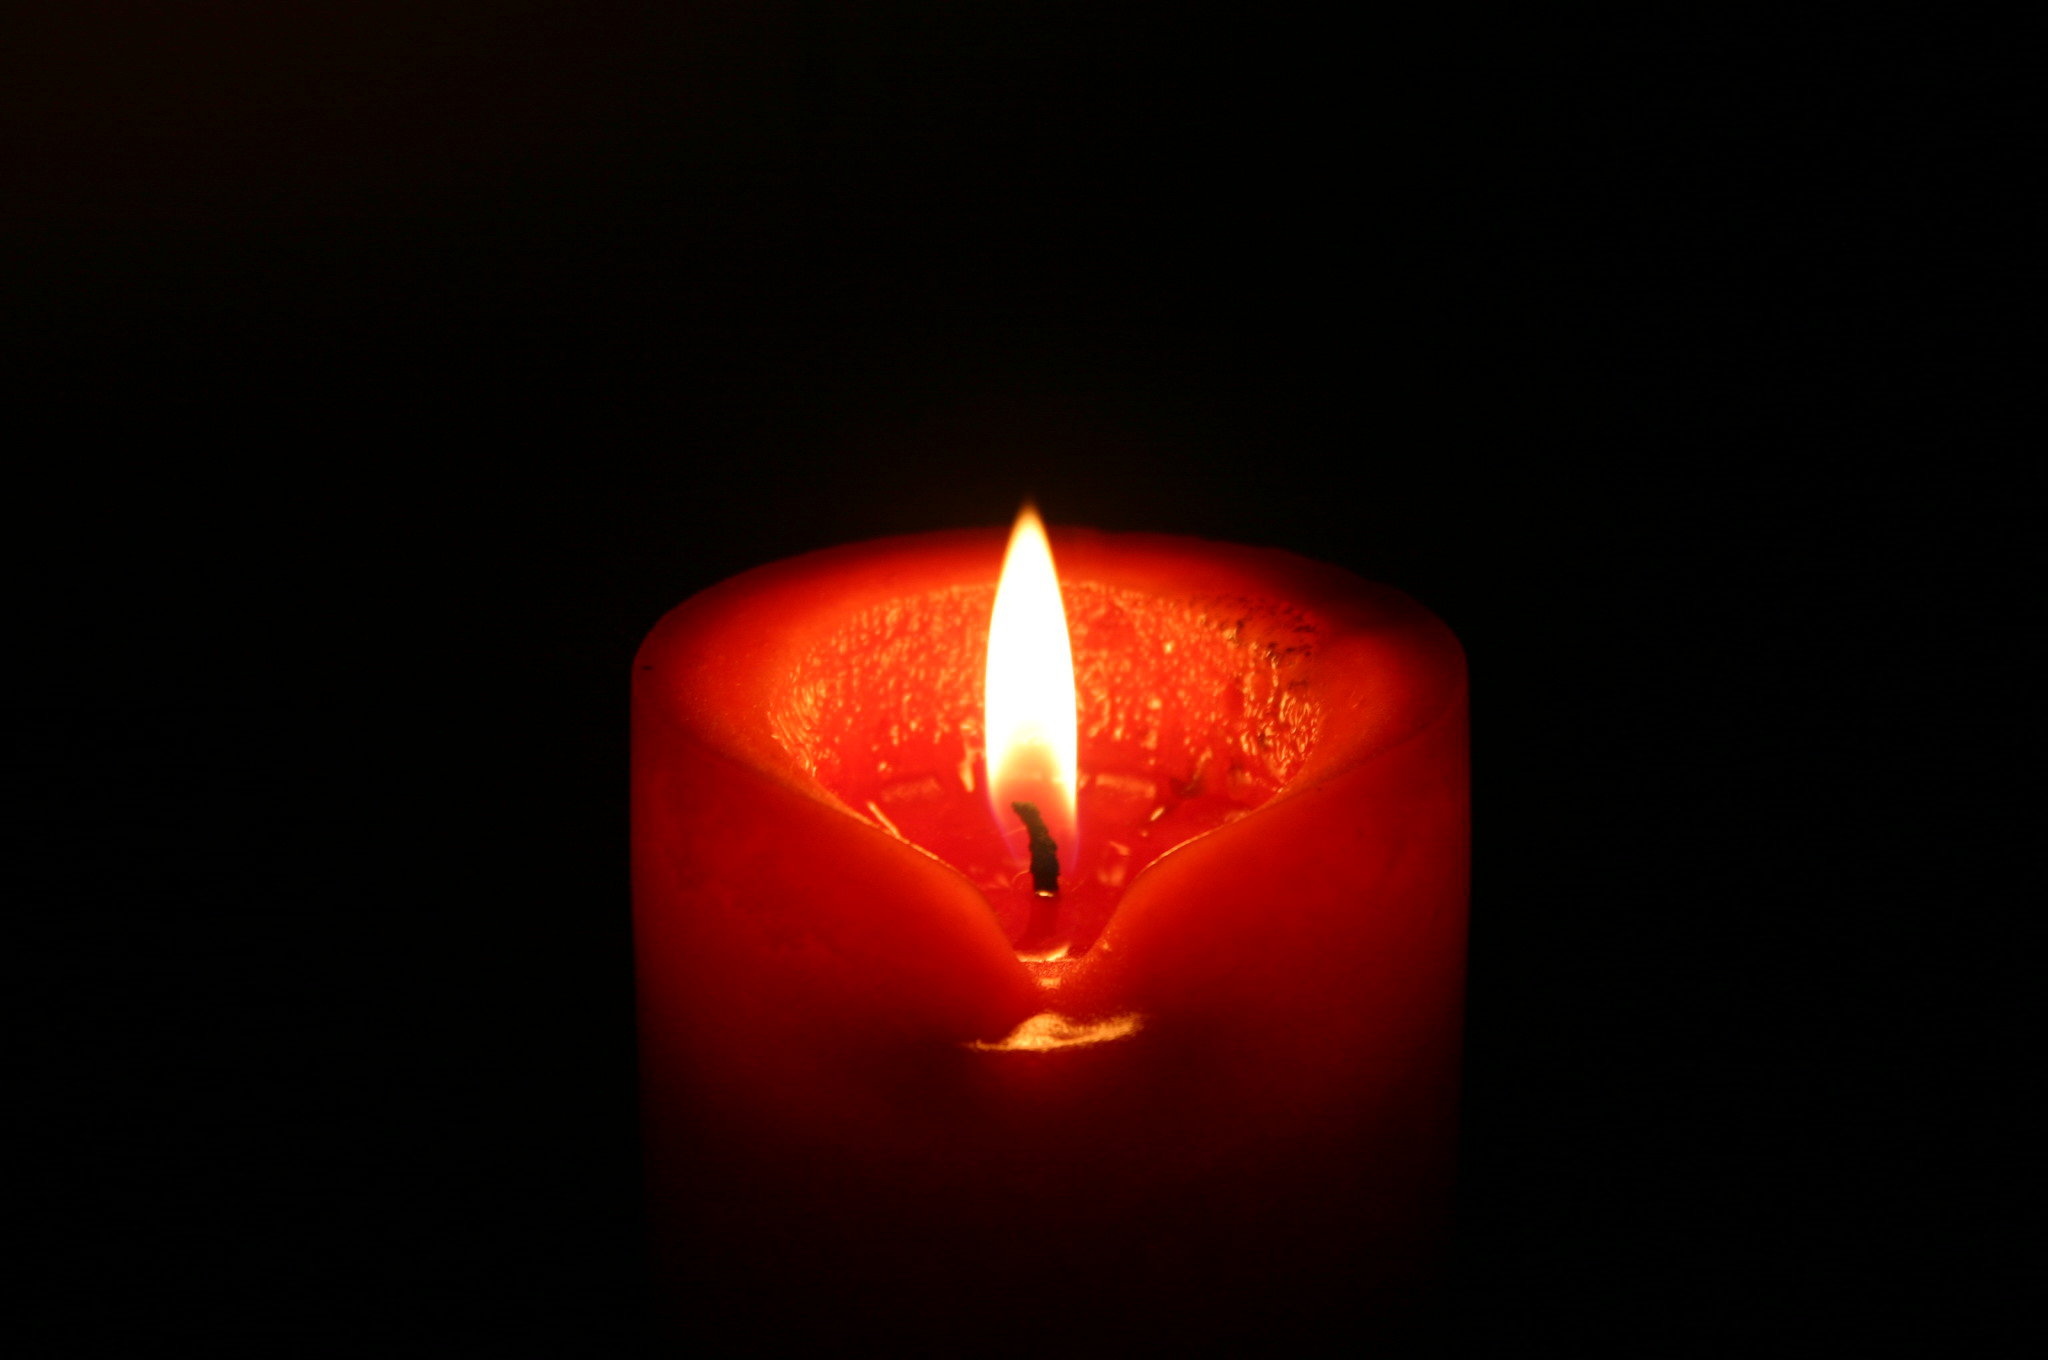 dark red candle by piscue on DeviantArt